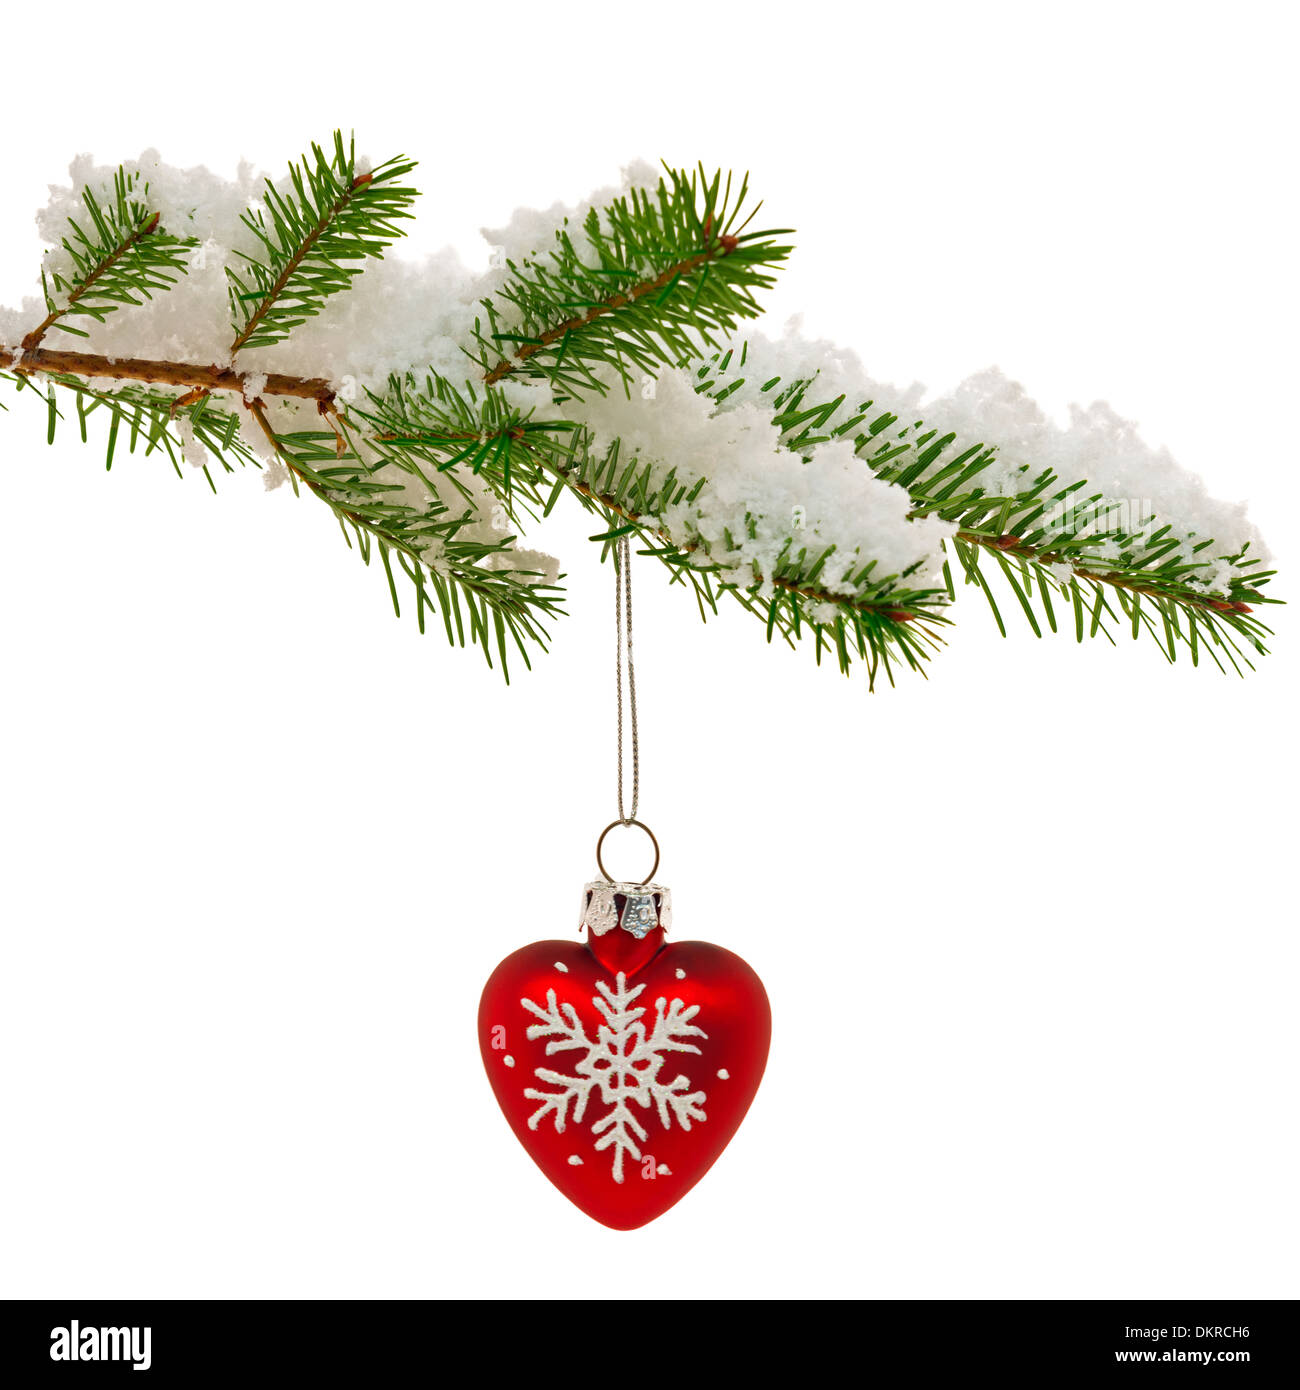 Red Heart Shaped Christmas Ornament Hanging From The Branch